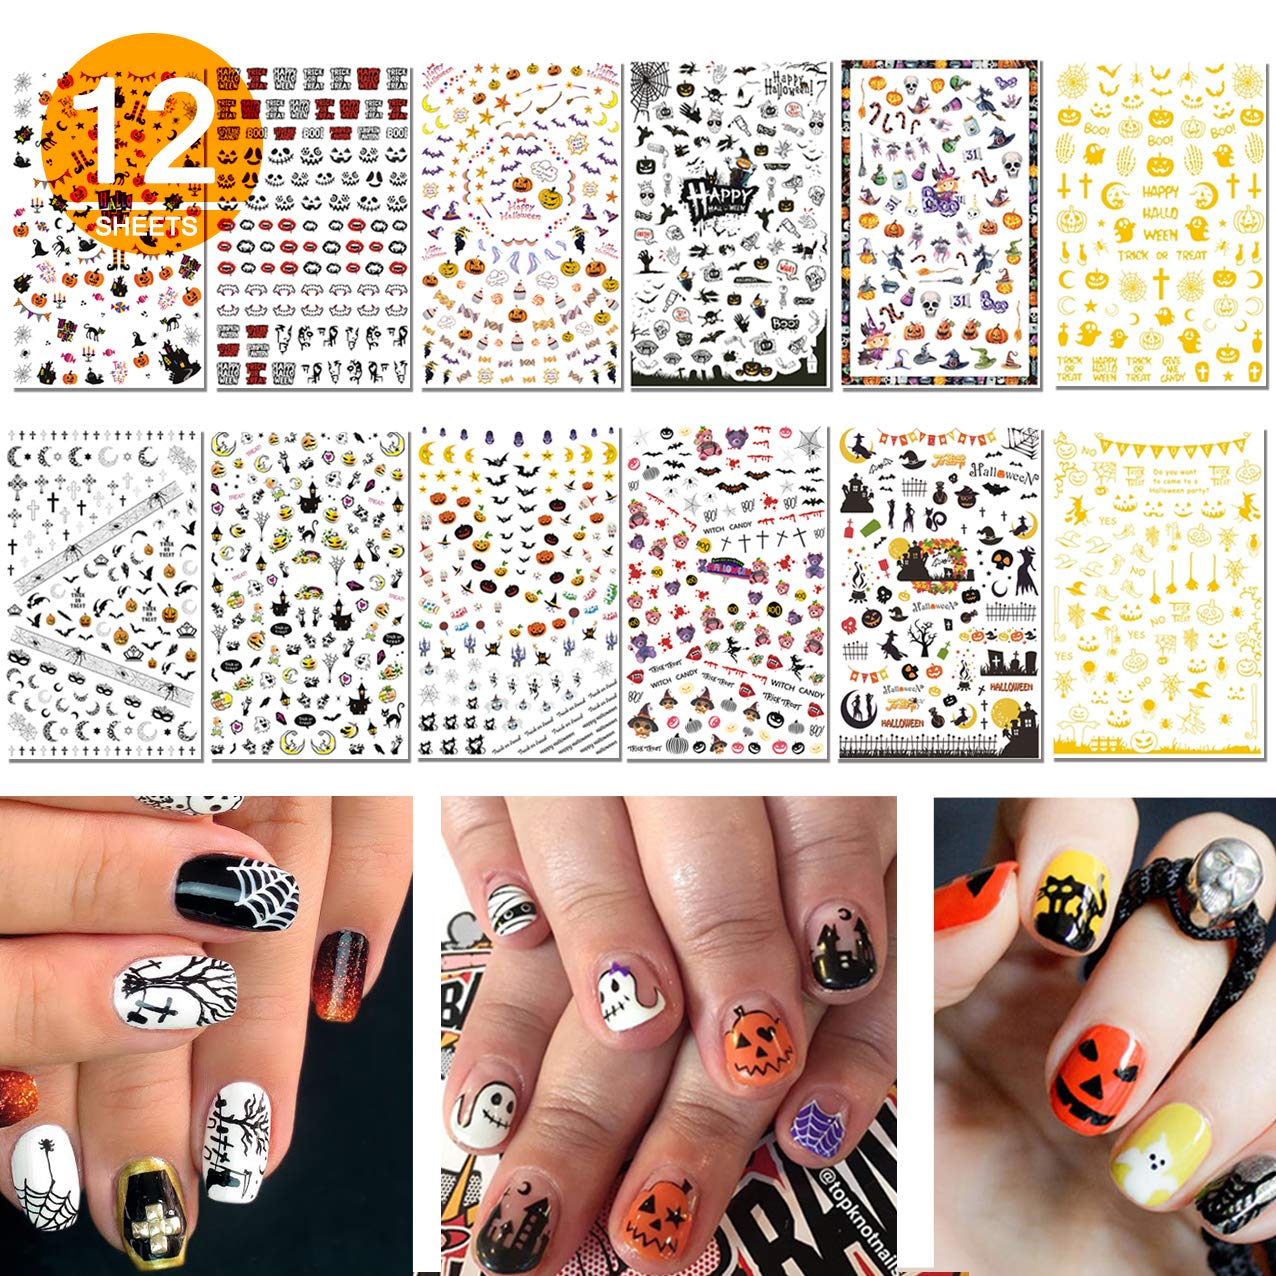 TailaiMei 1500 Pcs Halloween Nail Decals Stickers, 12 Sheets Self-Adhesive DIY Nail Art Tips Stencil for Halloween Party, Include Pumpkin/Bat/Ghost/Witch etc: Beauty